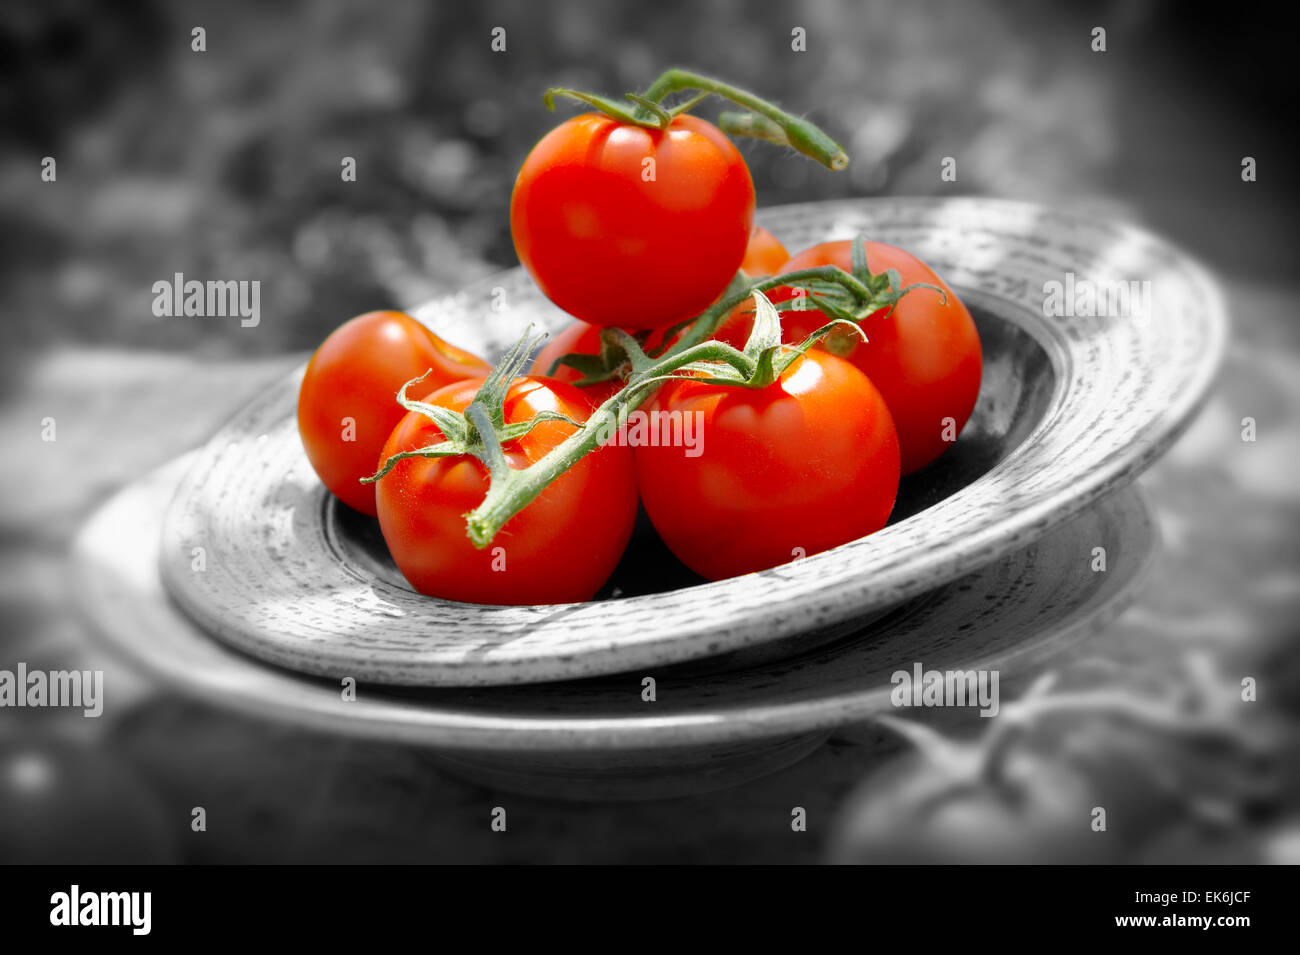 whole picked fresh red tomatoes on vines - Stock Image